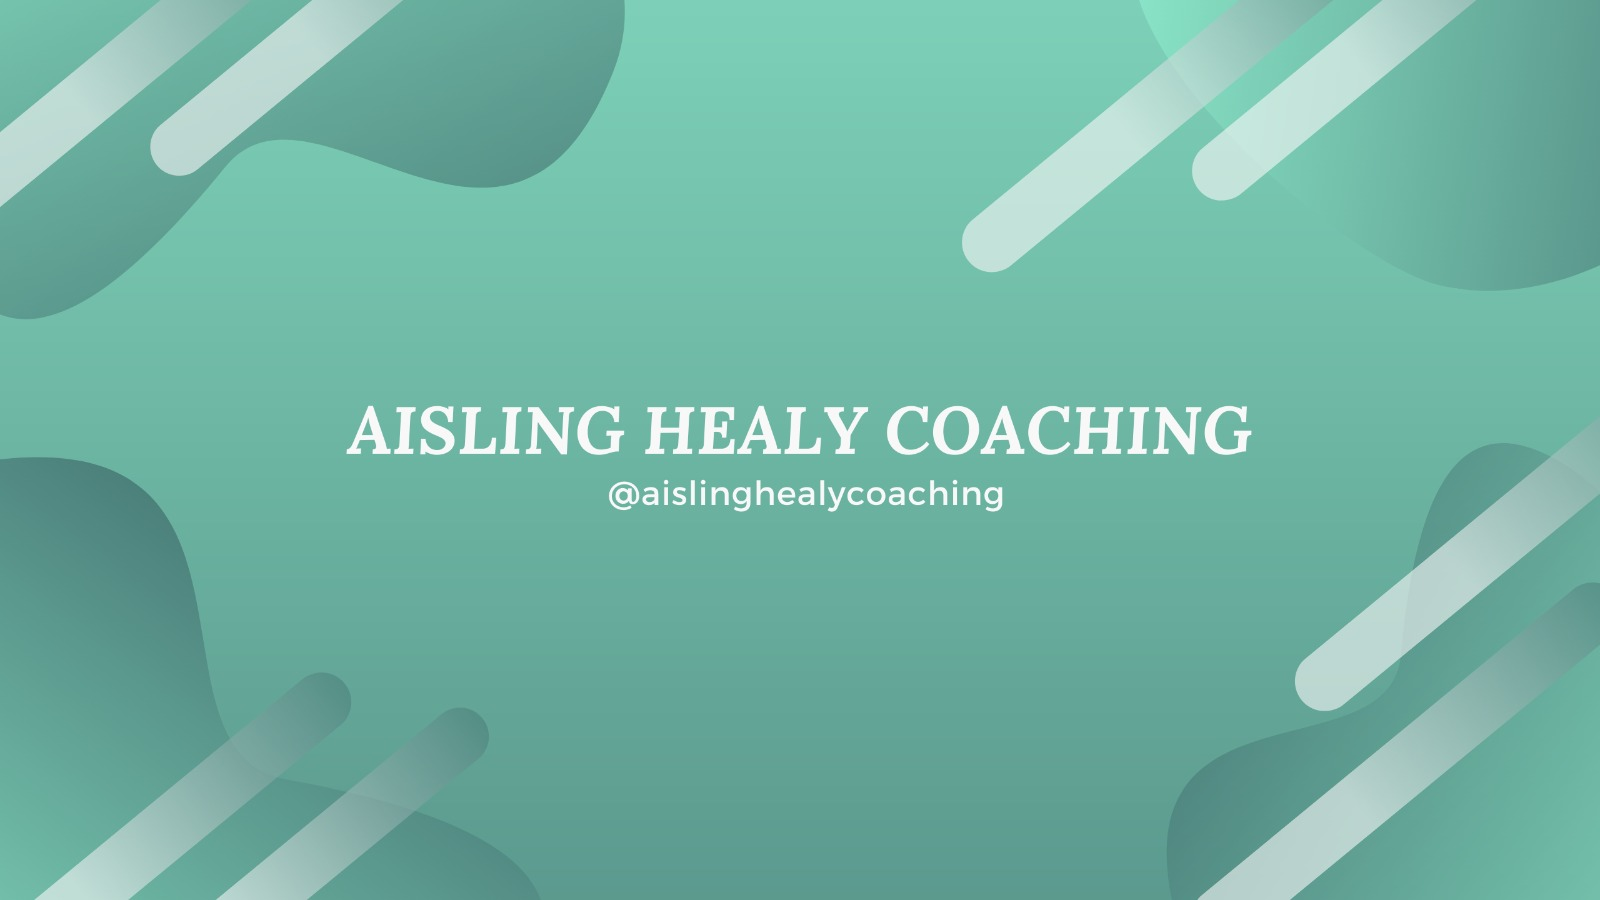 Aisling Healy Coaching returns to offer counselling to jobseekers on November 21st